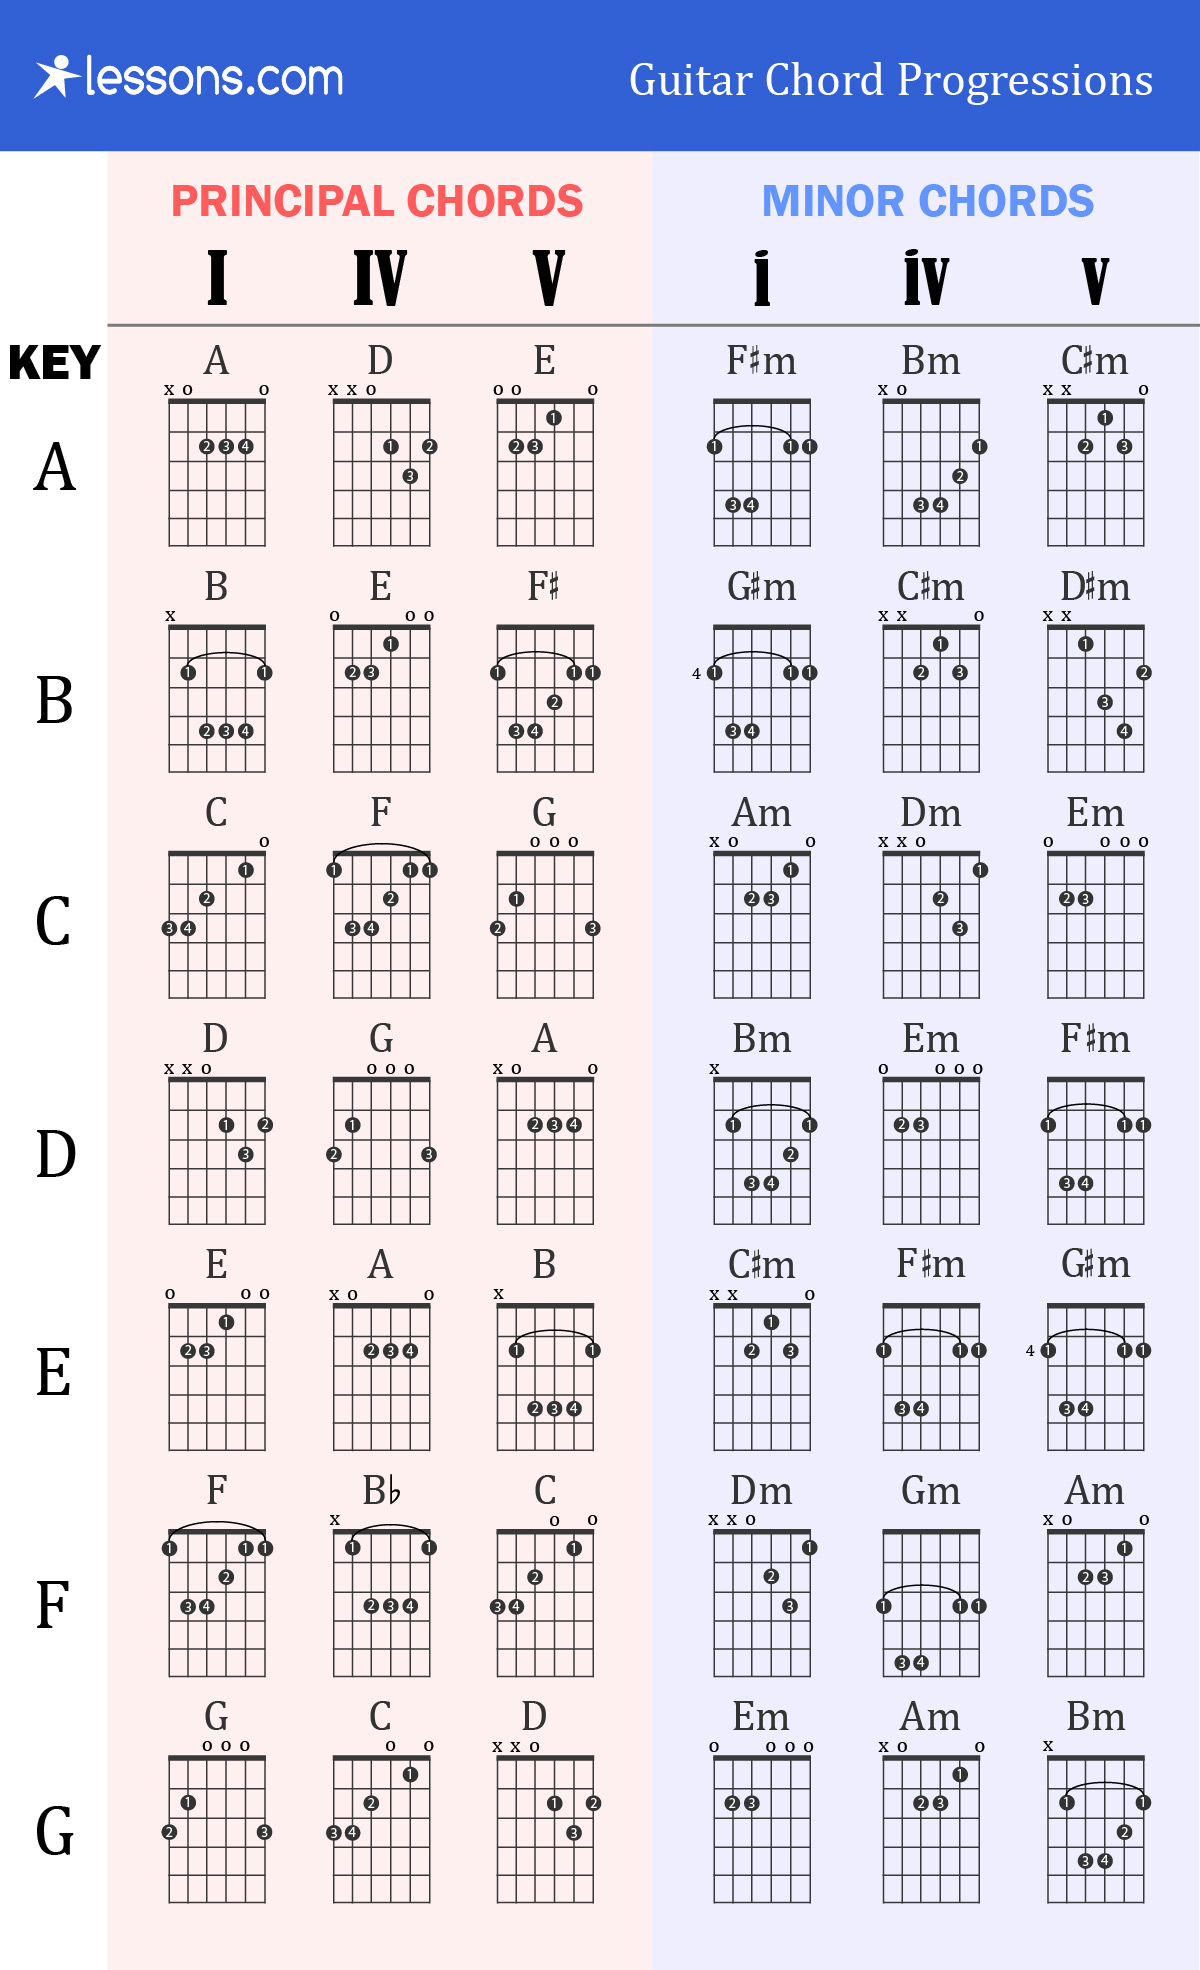 Bm Guitar Chord Guitar Chords The Complete Guide With Charts How Tos More